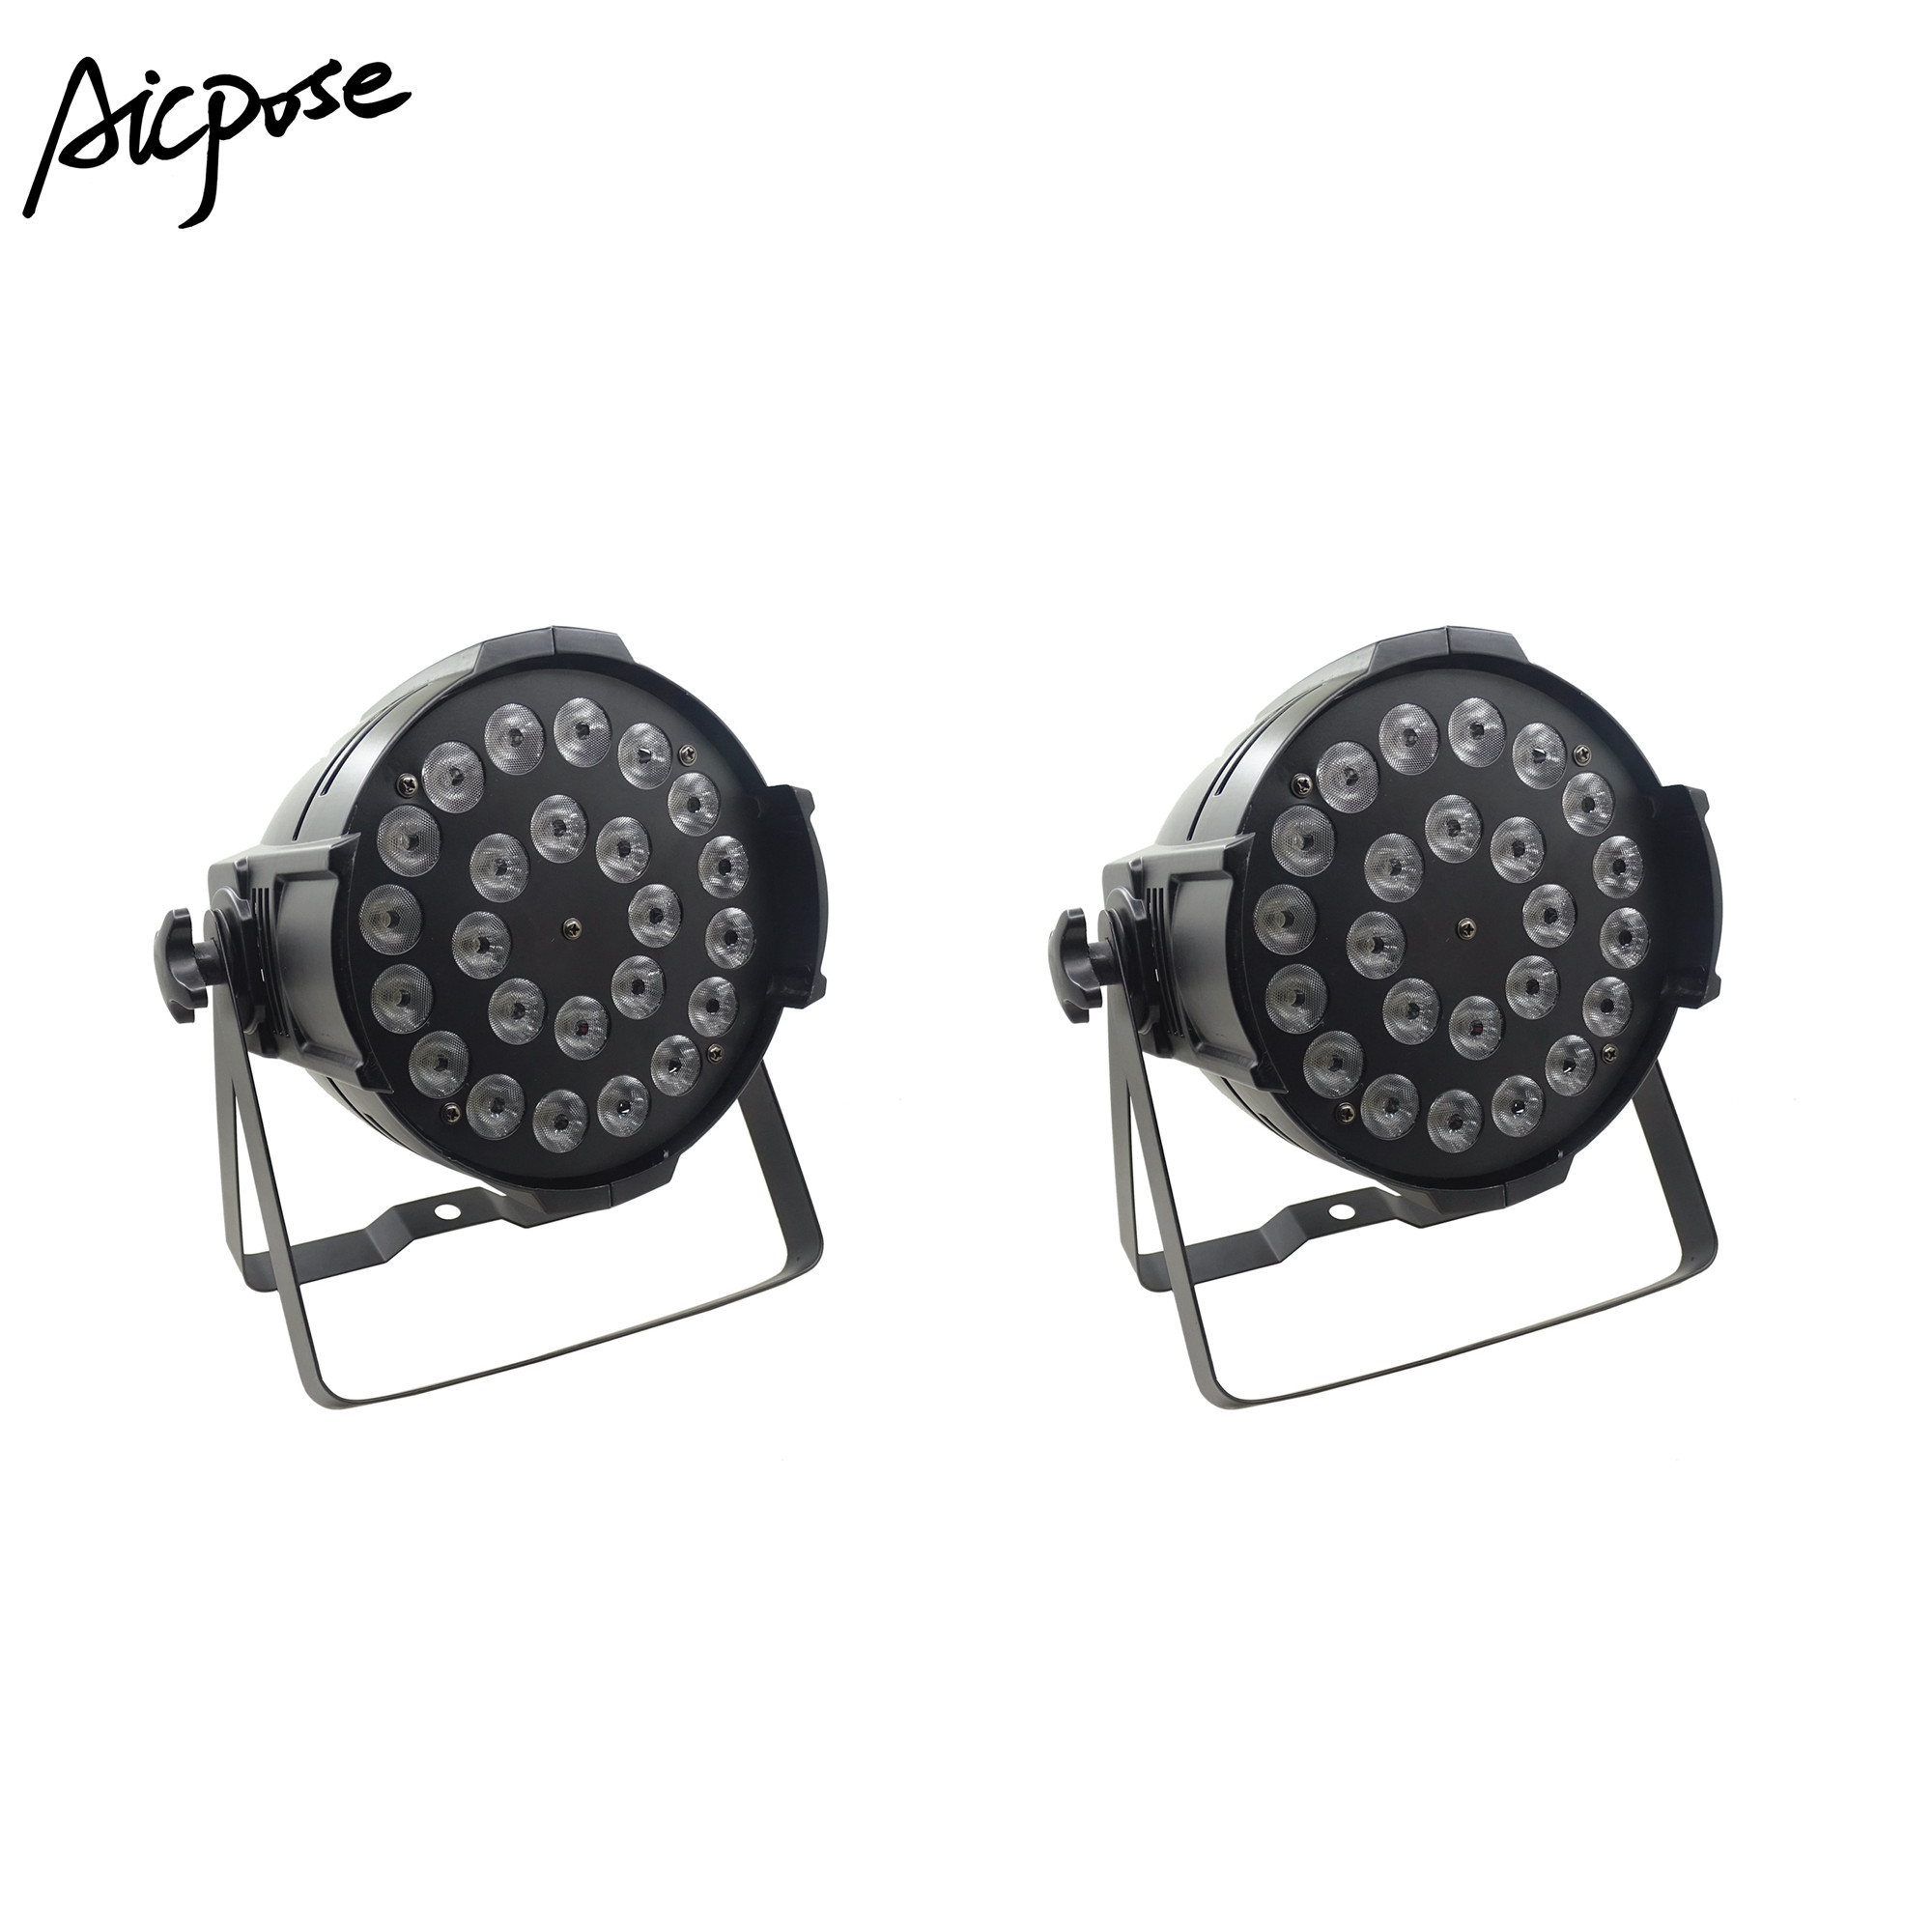 2pcs/lot 24x12w Light Aluminum LED Par 24x12W RGBW 4in1 LED Par Can Par 64 Led Spotlight Dj Projector Wash Lighting Stage Light